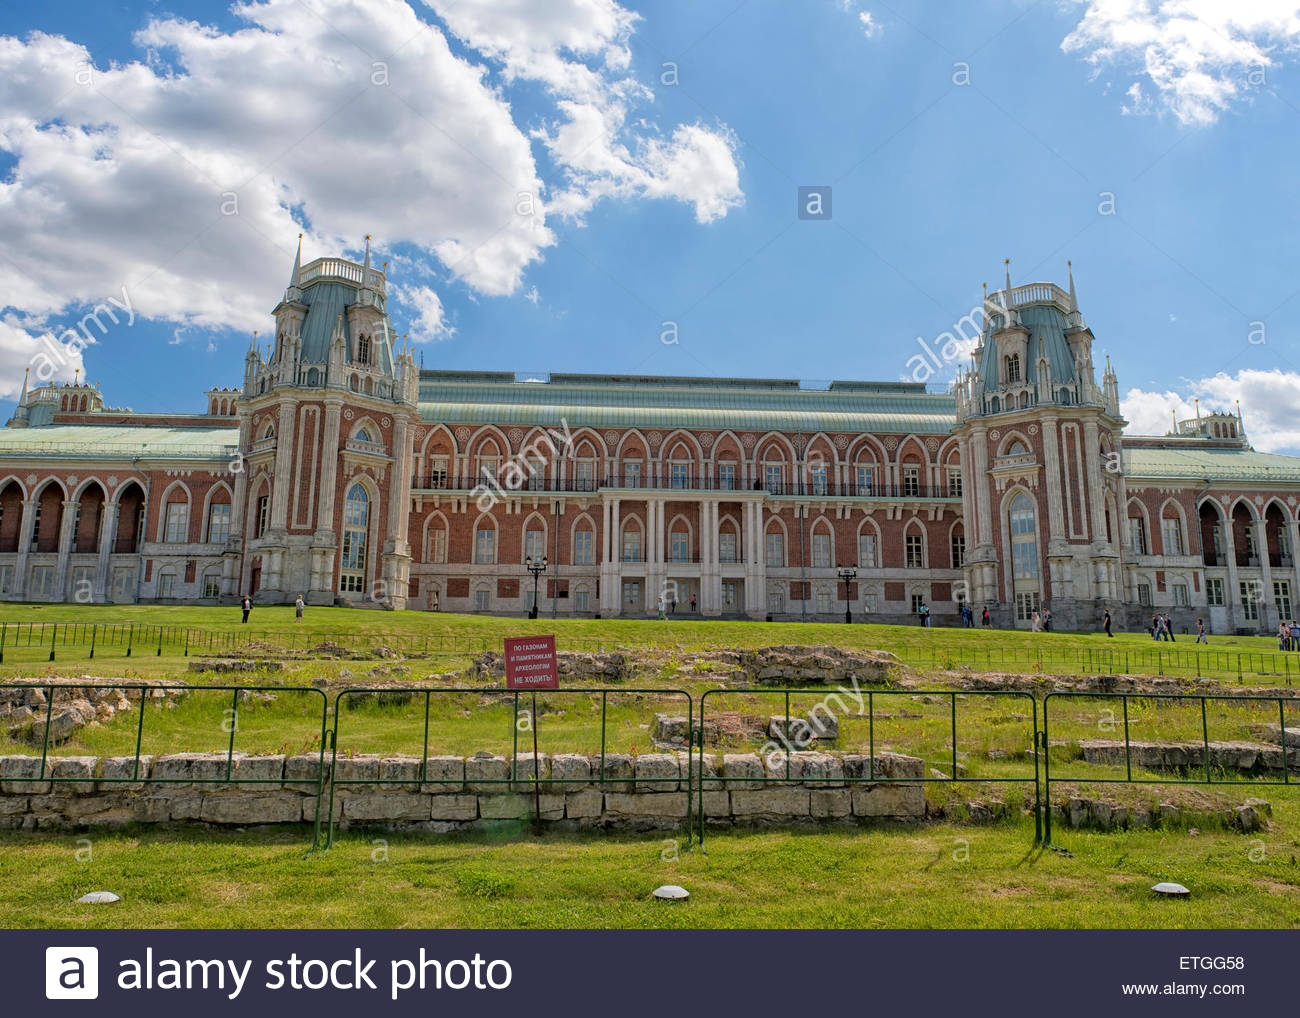 Tsaritsyno Moscow, Grand Palace in Tsaritsyno Park in Moscow, Russia Stock Photo ...